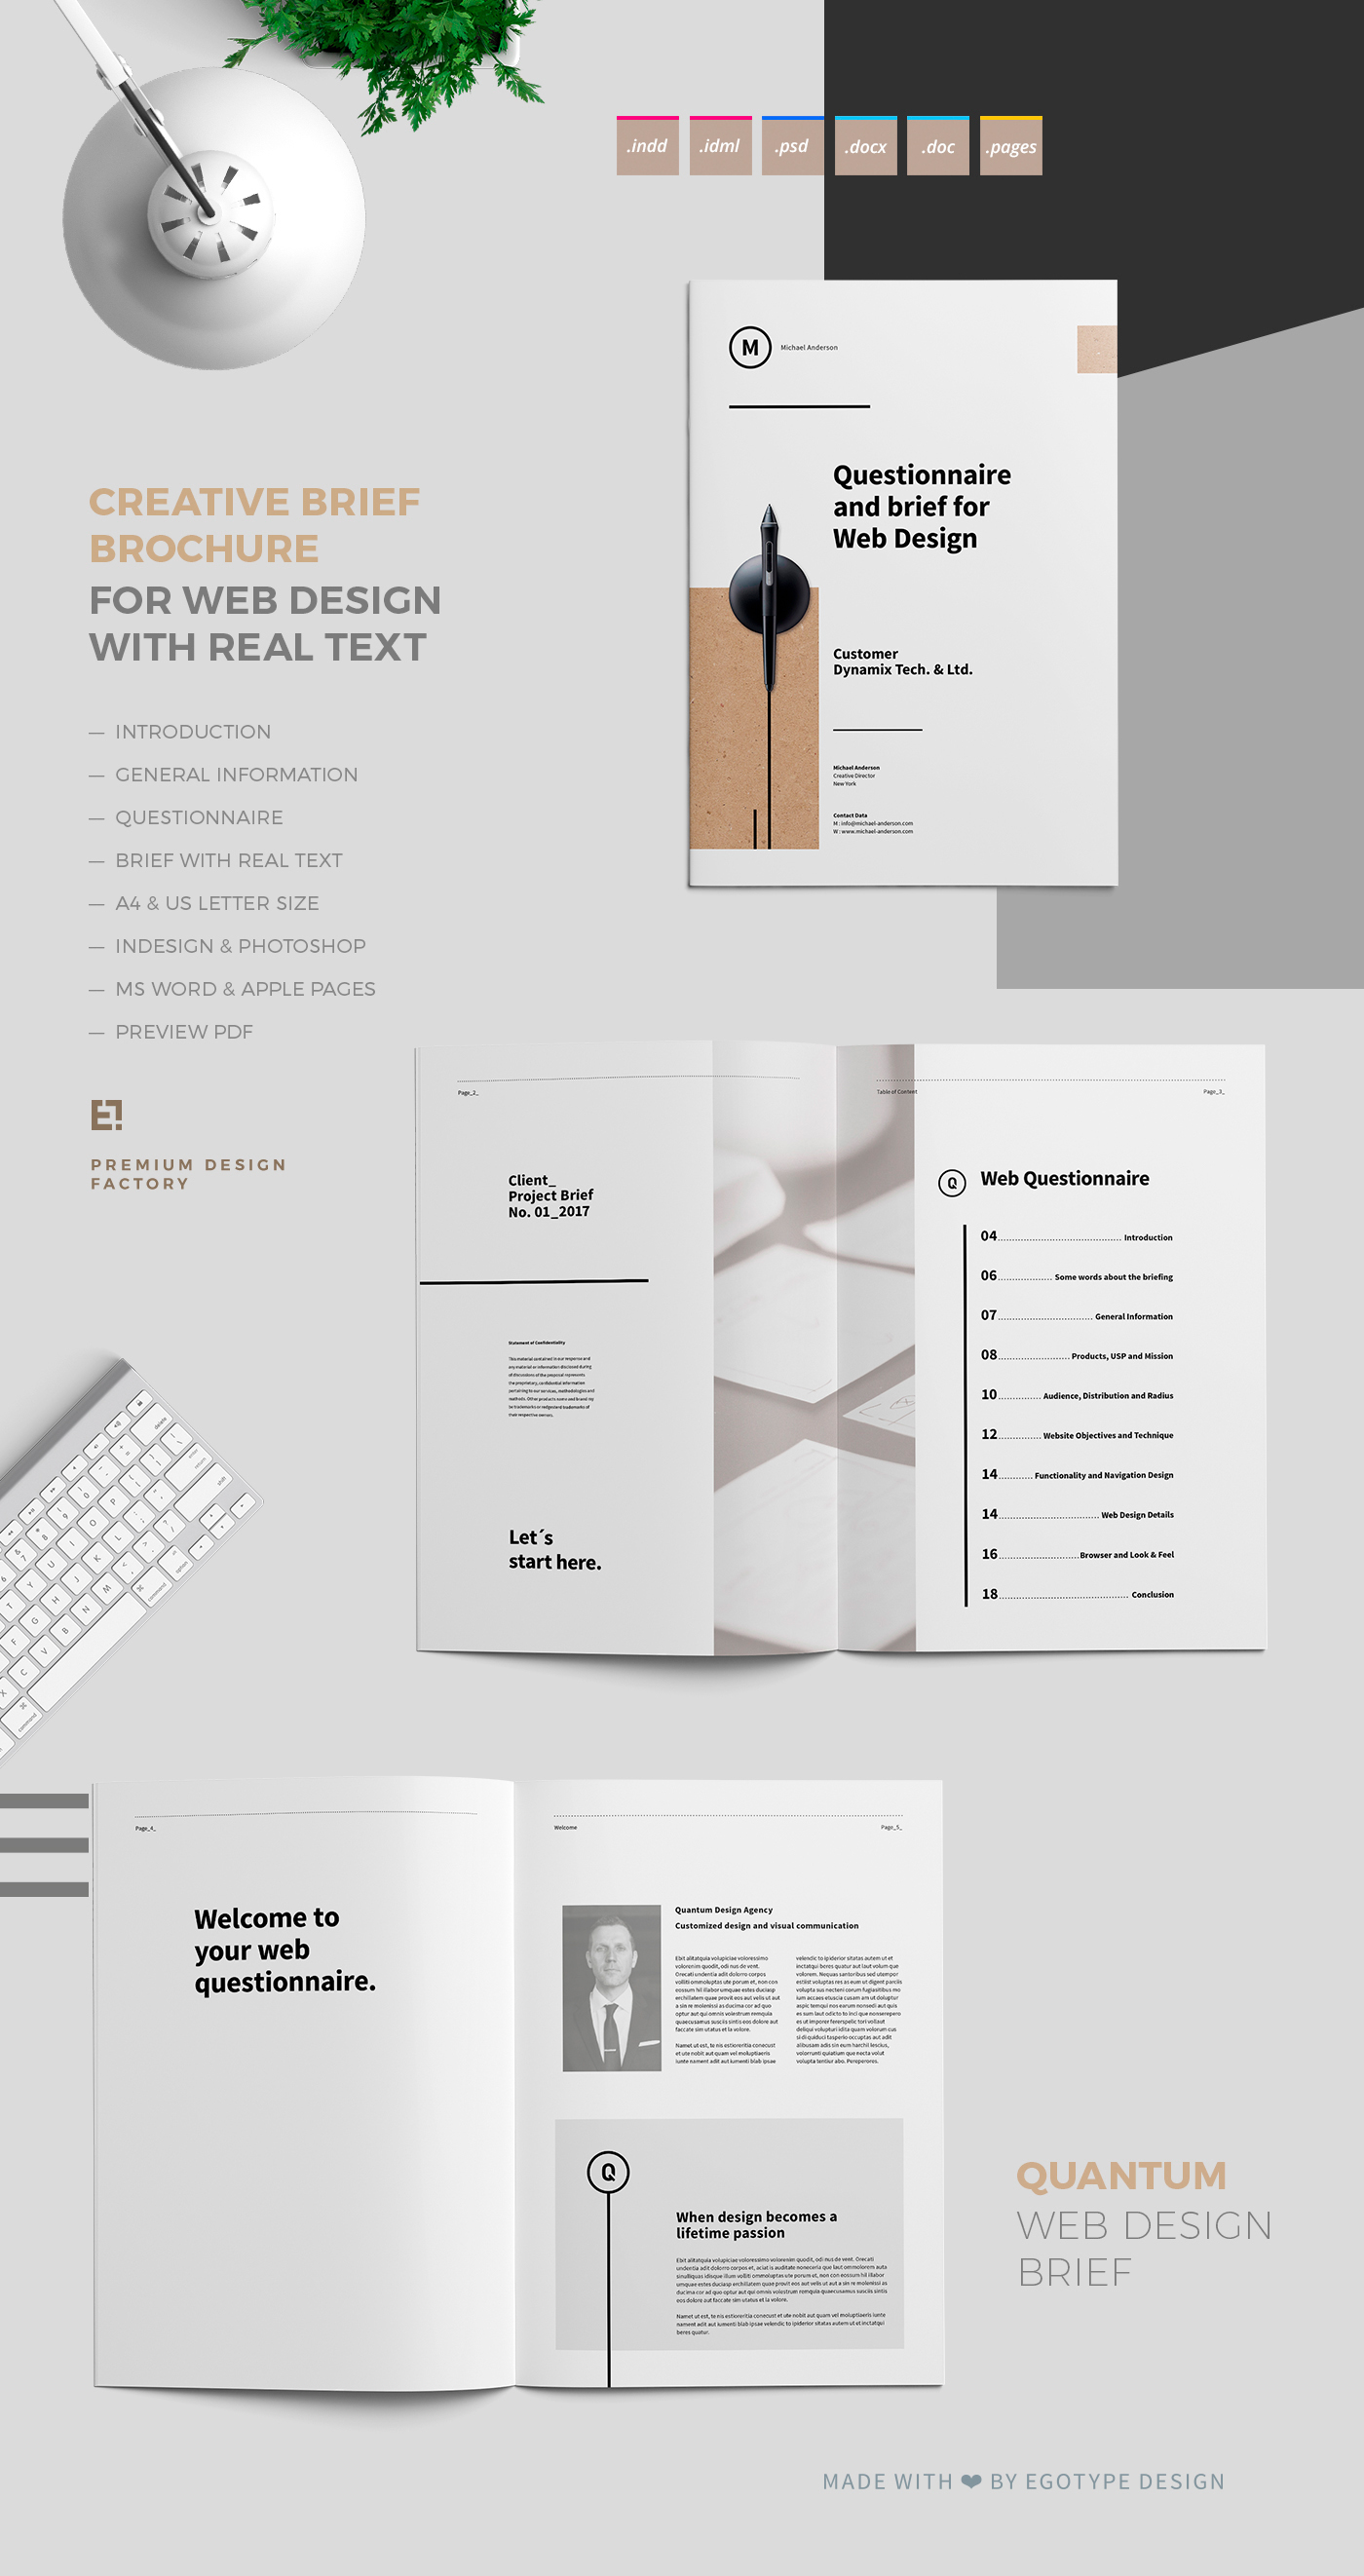 Questionnaire and Brief for Web Design on Behance